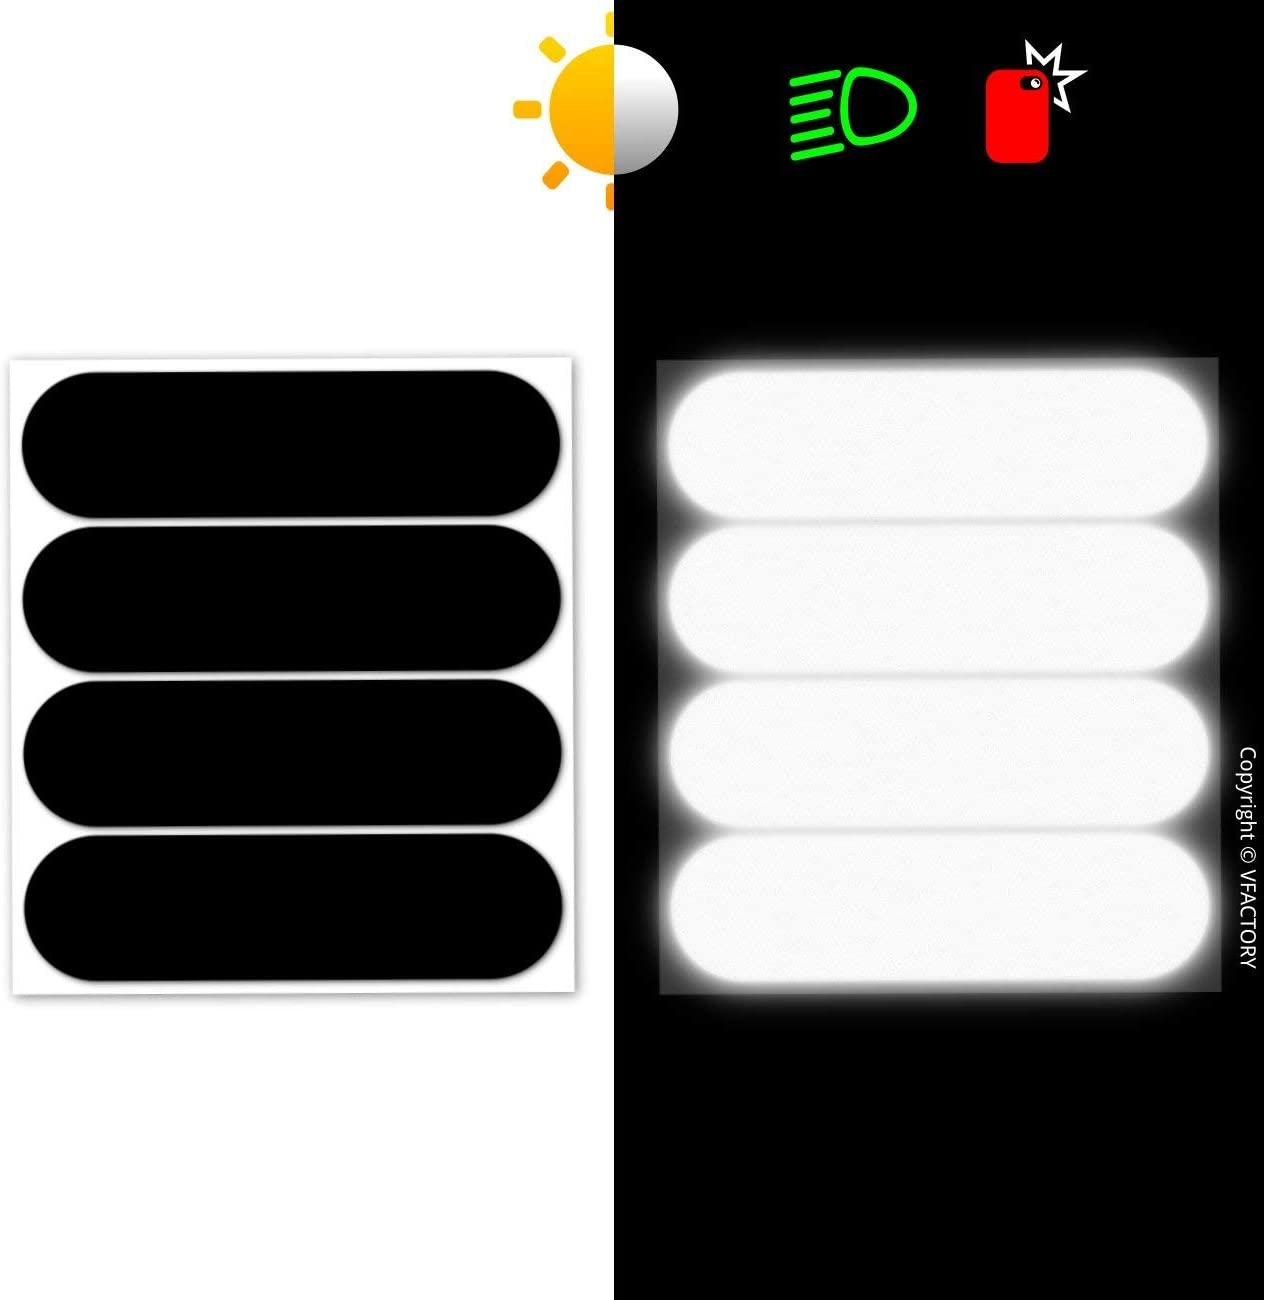 4 retro reflective stickers kit Adhesive for motorbike Helmet//Scooter//Bike//Stroller//Buggy//Toys 8,5 x 2,3 cm 4 Pack B REFLECTIVE, Black Night visibility safety